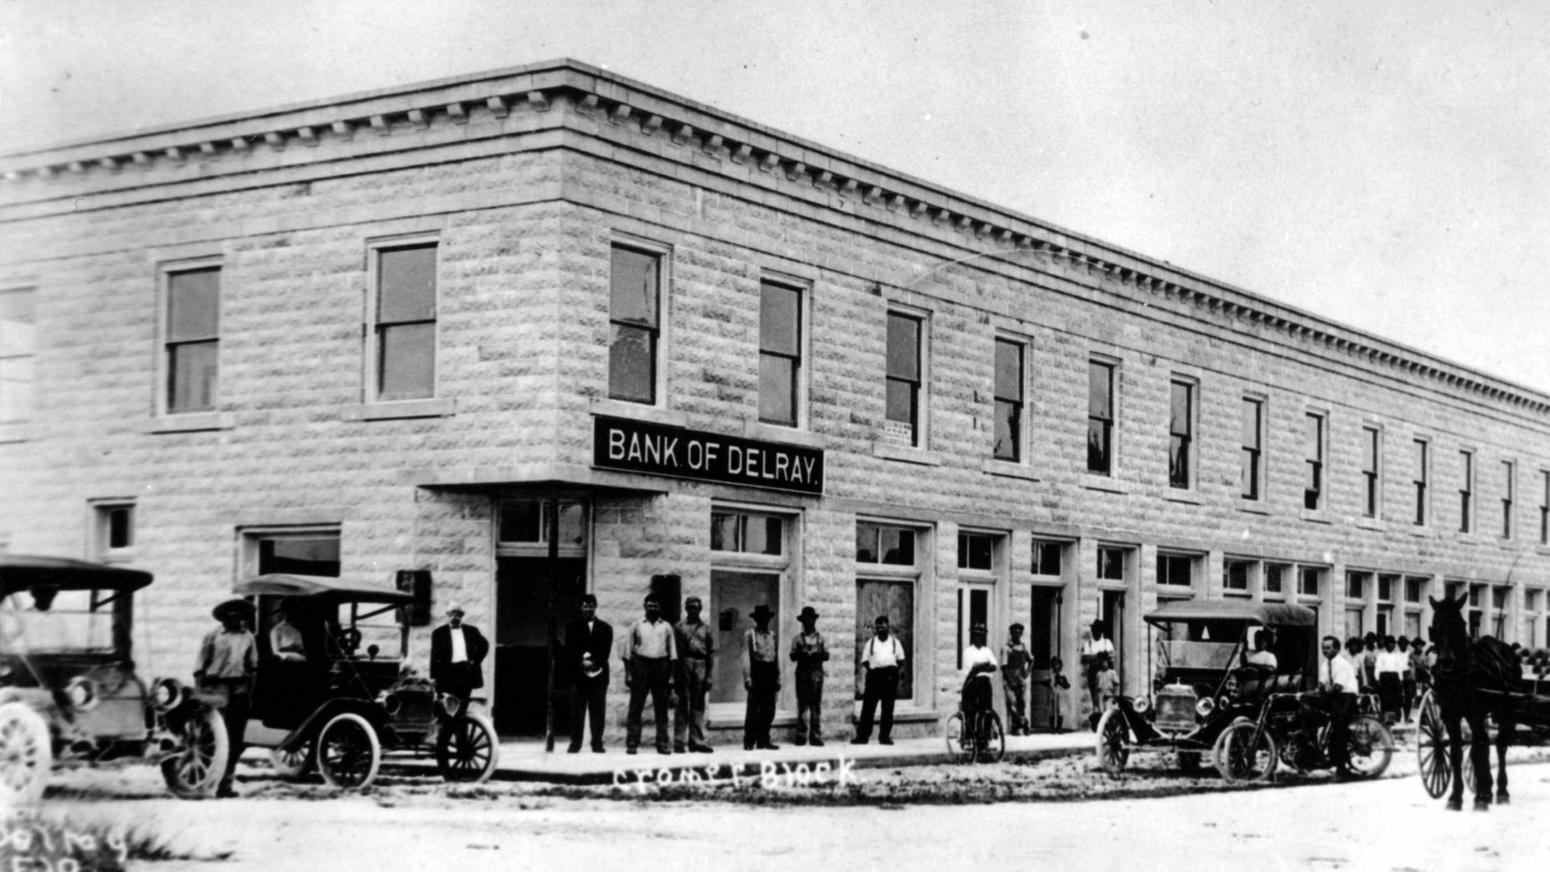 Bank of Delray 1912